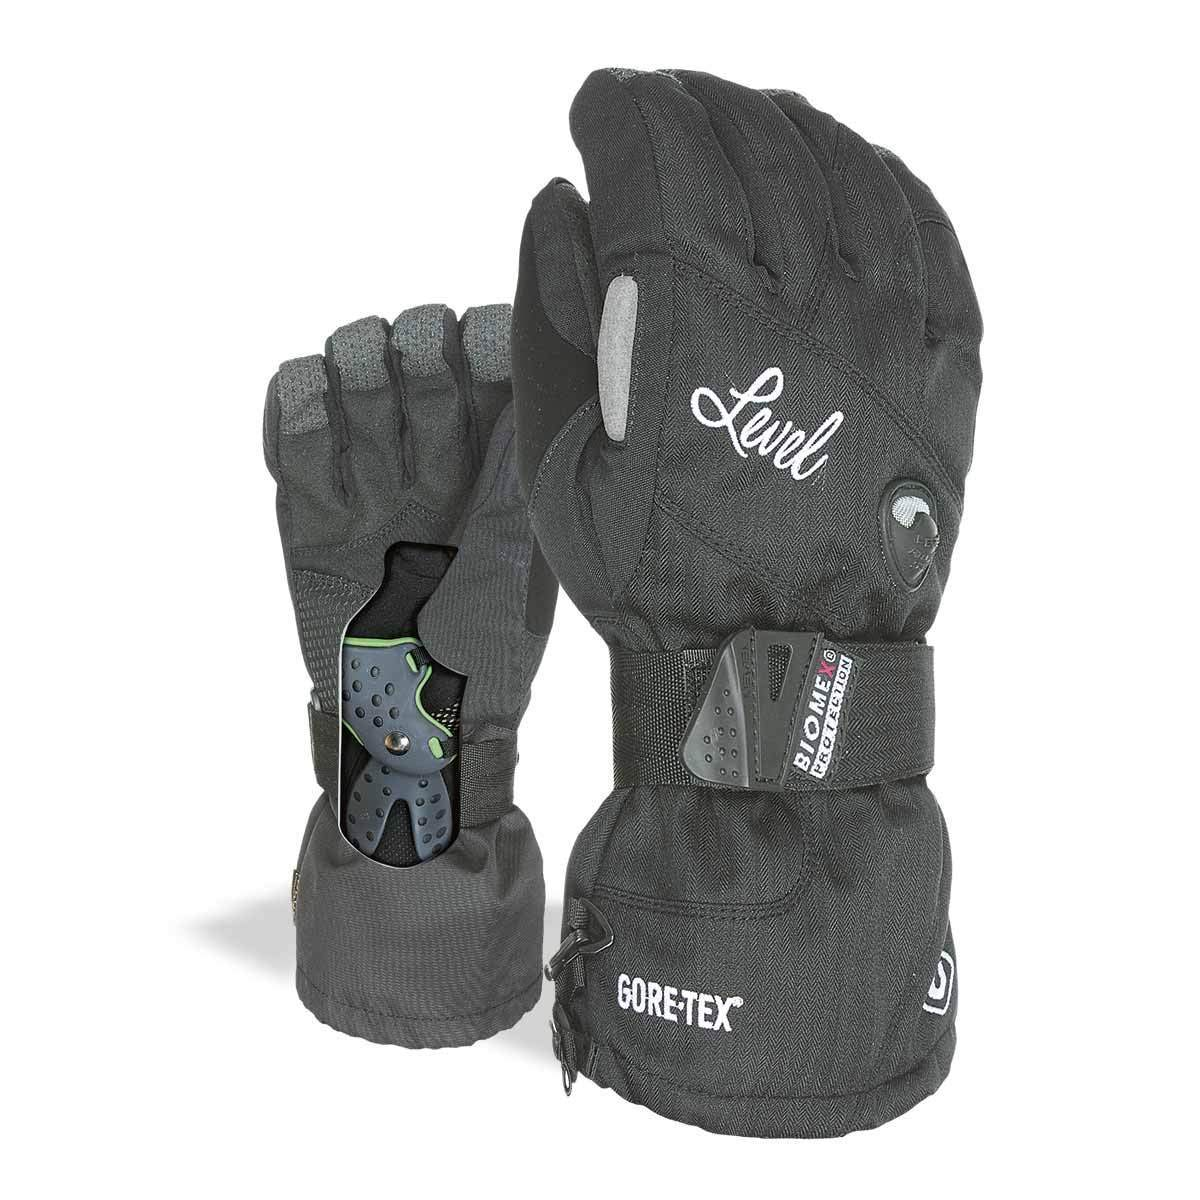 """Level Half Pipe""""Plus"""" Womens Snowboard Gloves with BioMex Wrist Guards, Waterproof GoreTex Shell, Warm ThermoPlus Liner"""